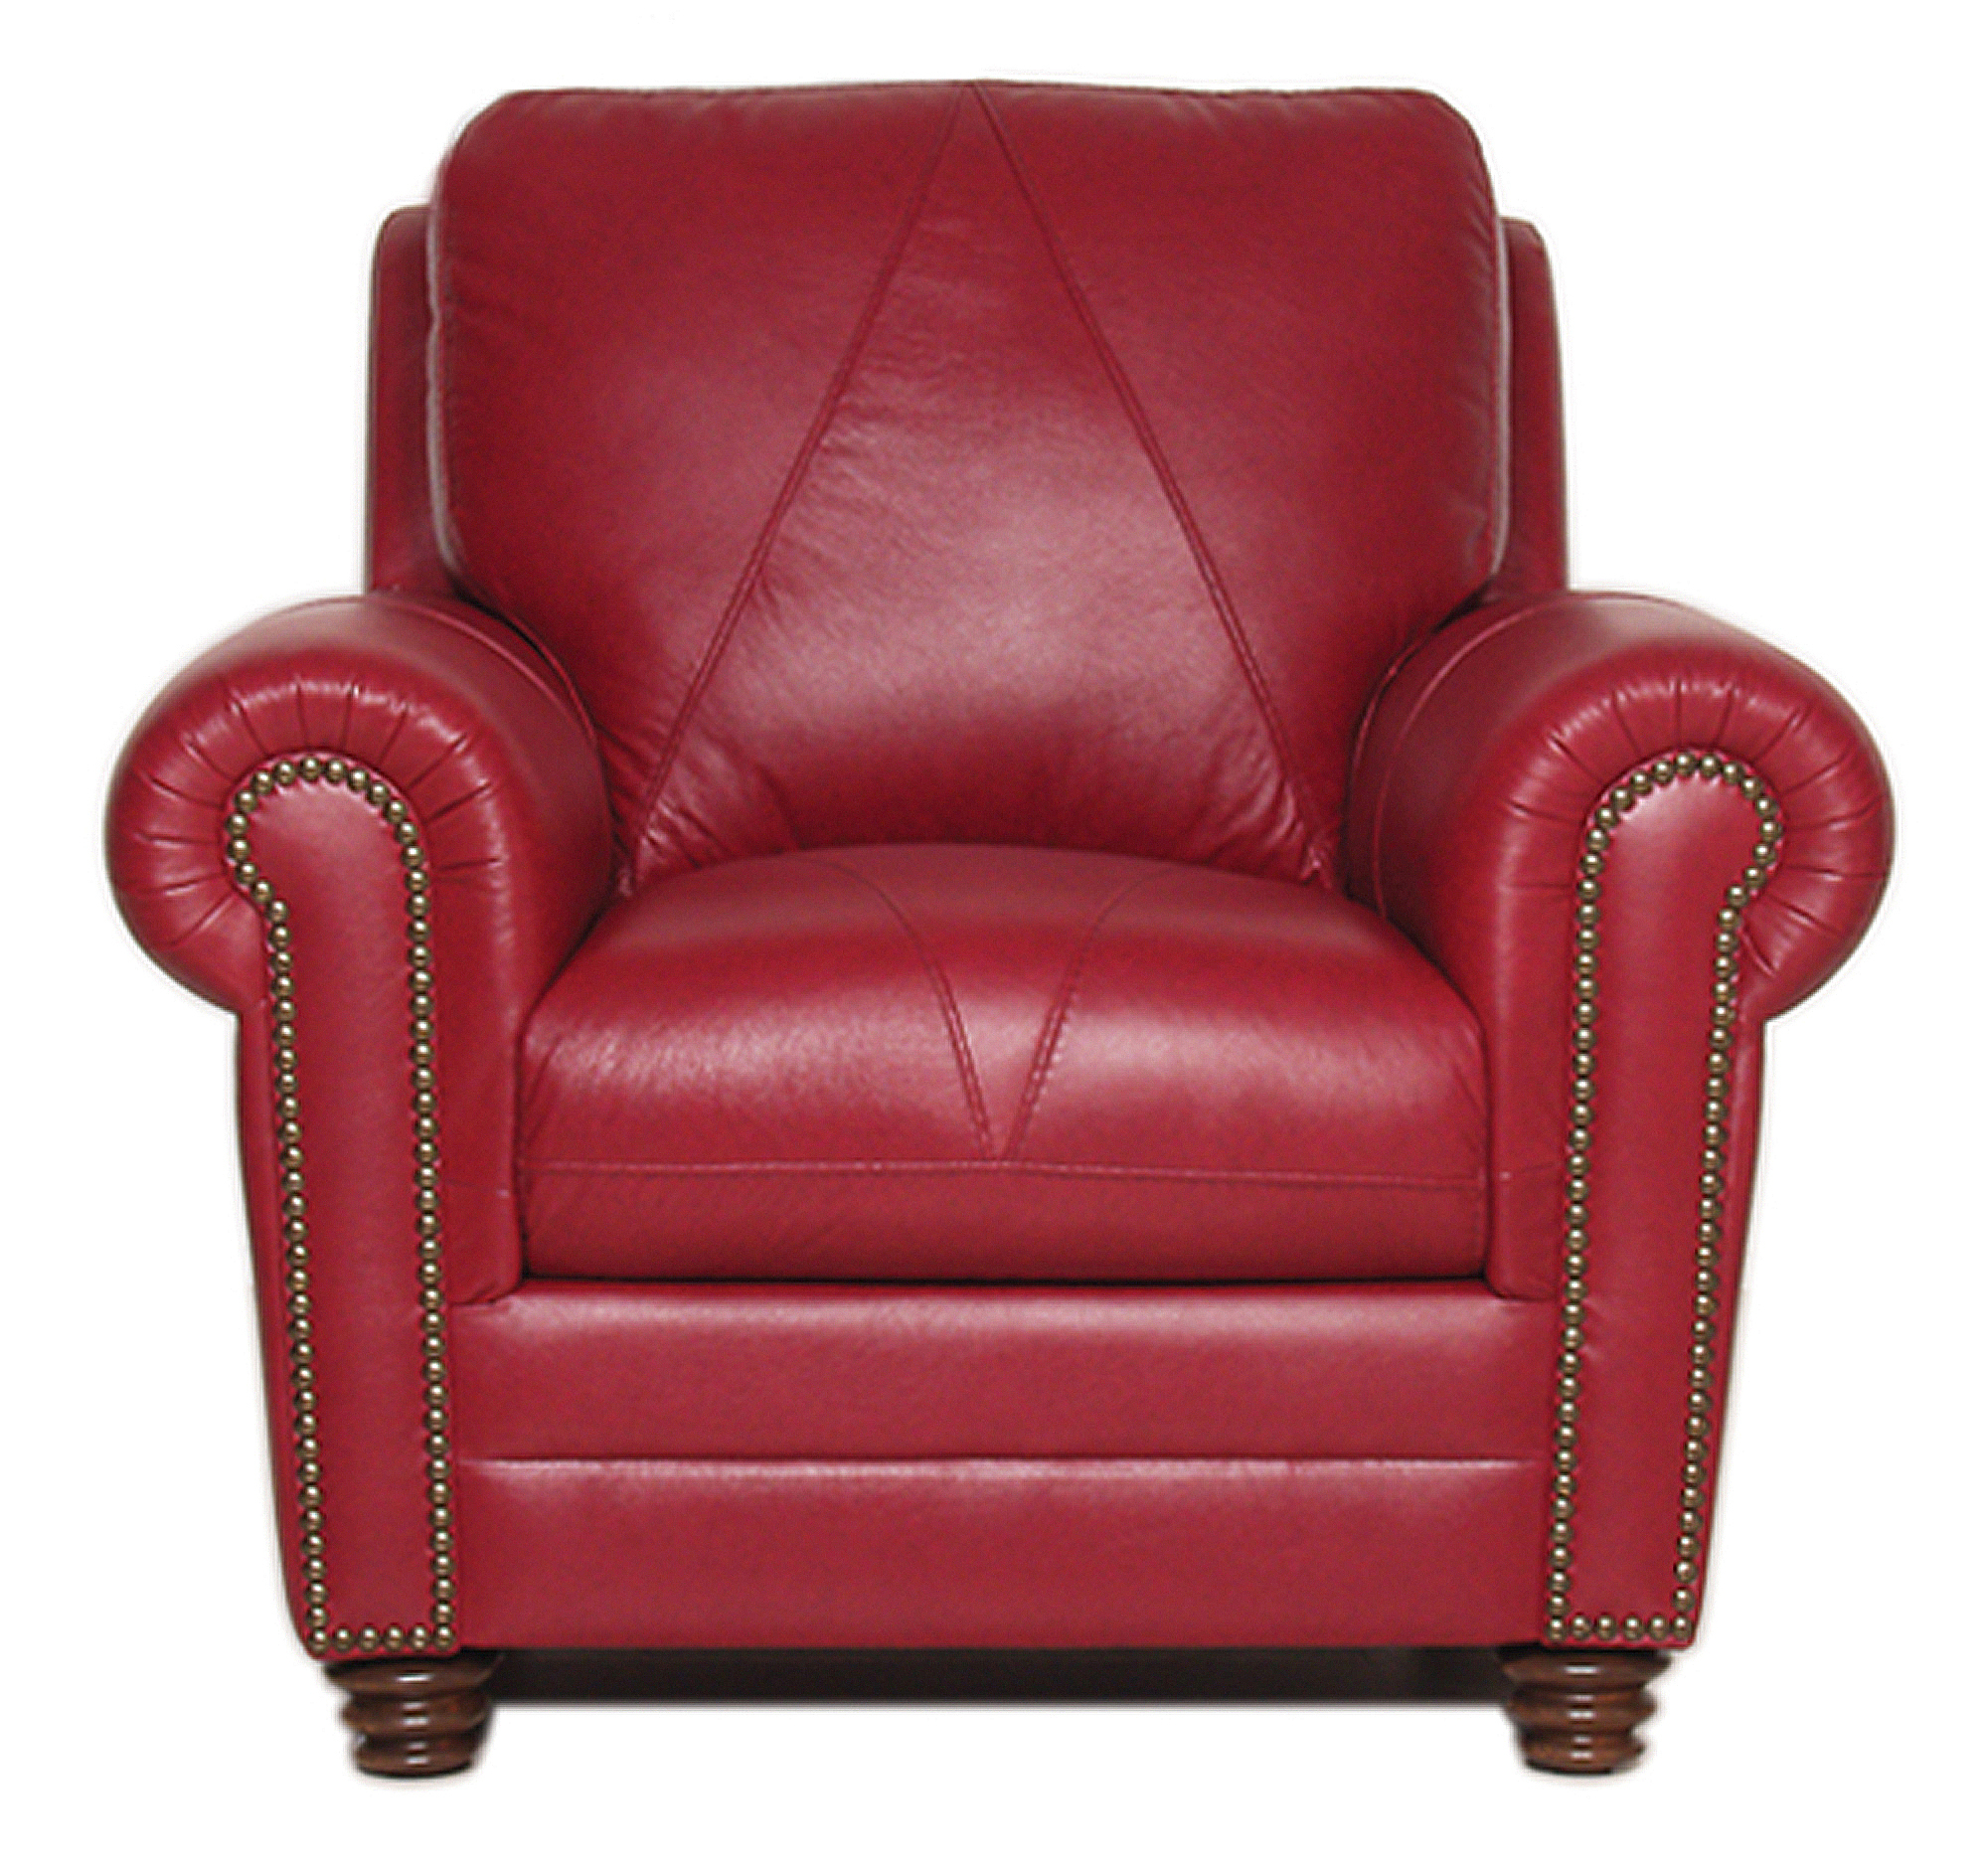 Weston Collection – Luke Leather Furniture Inside Andrew Leather Sofa Chairs (Image 25 of 25)